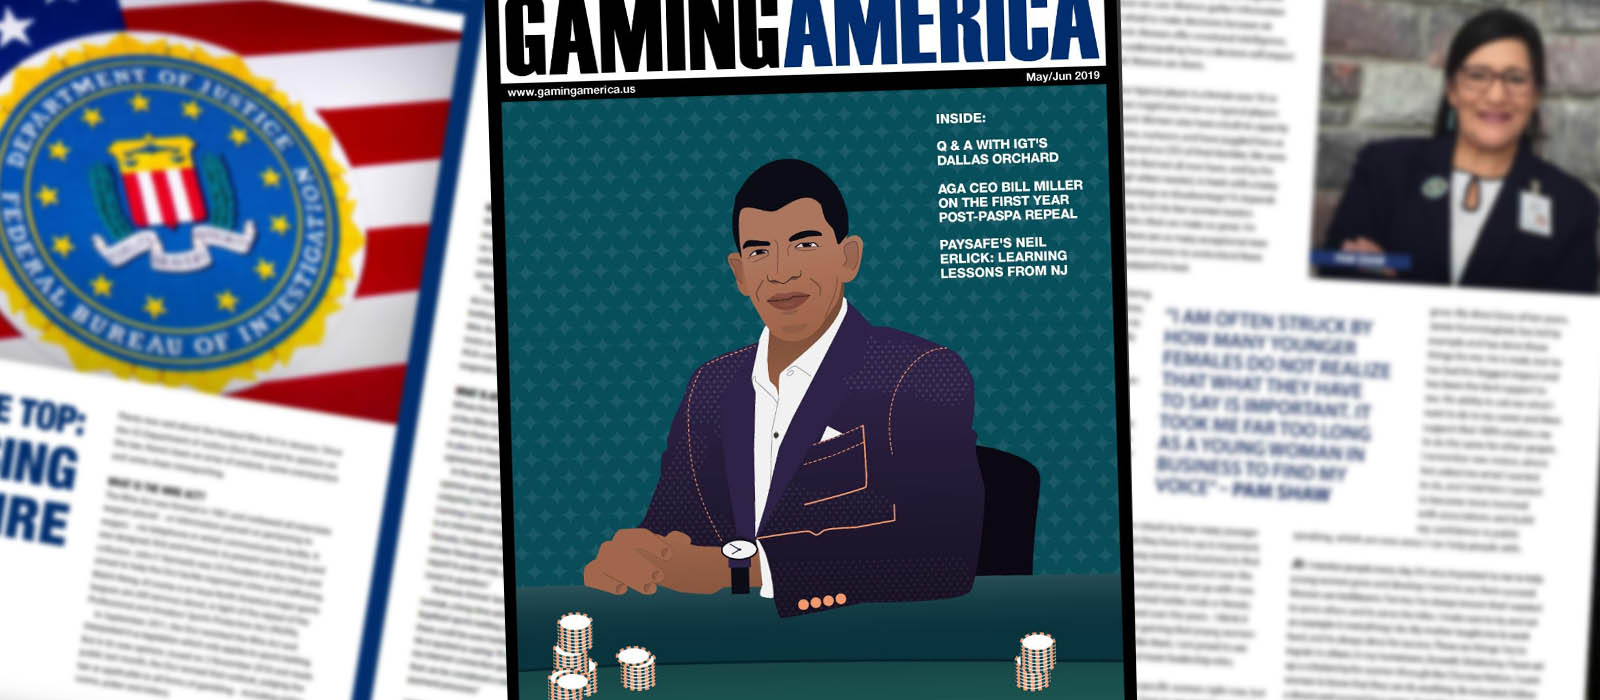 Gaming America may-June 2019